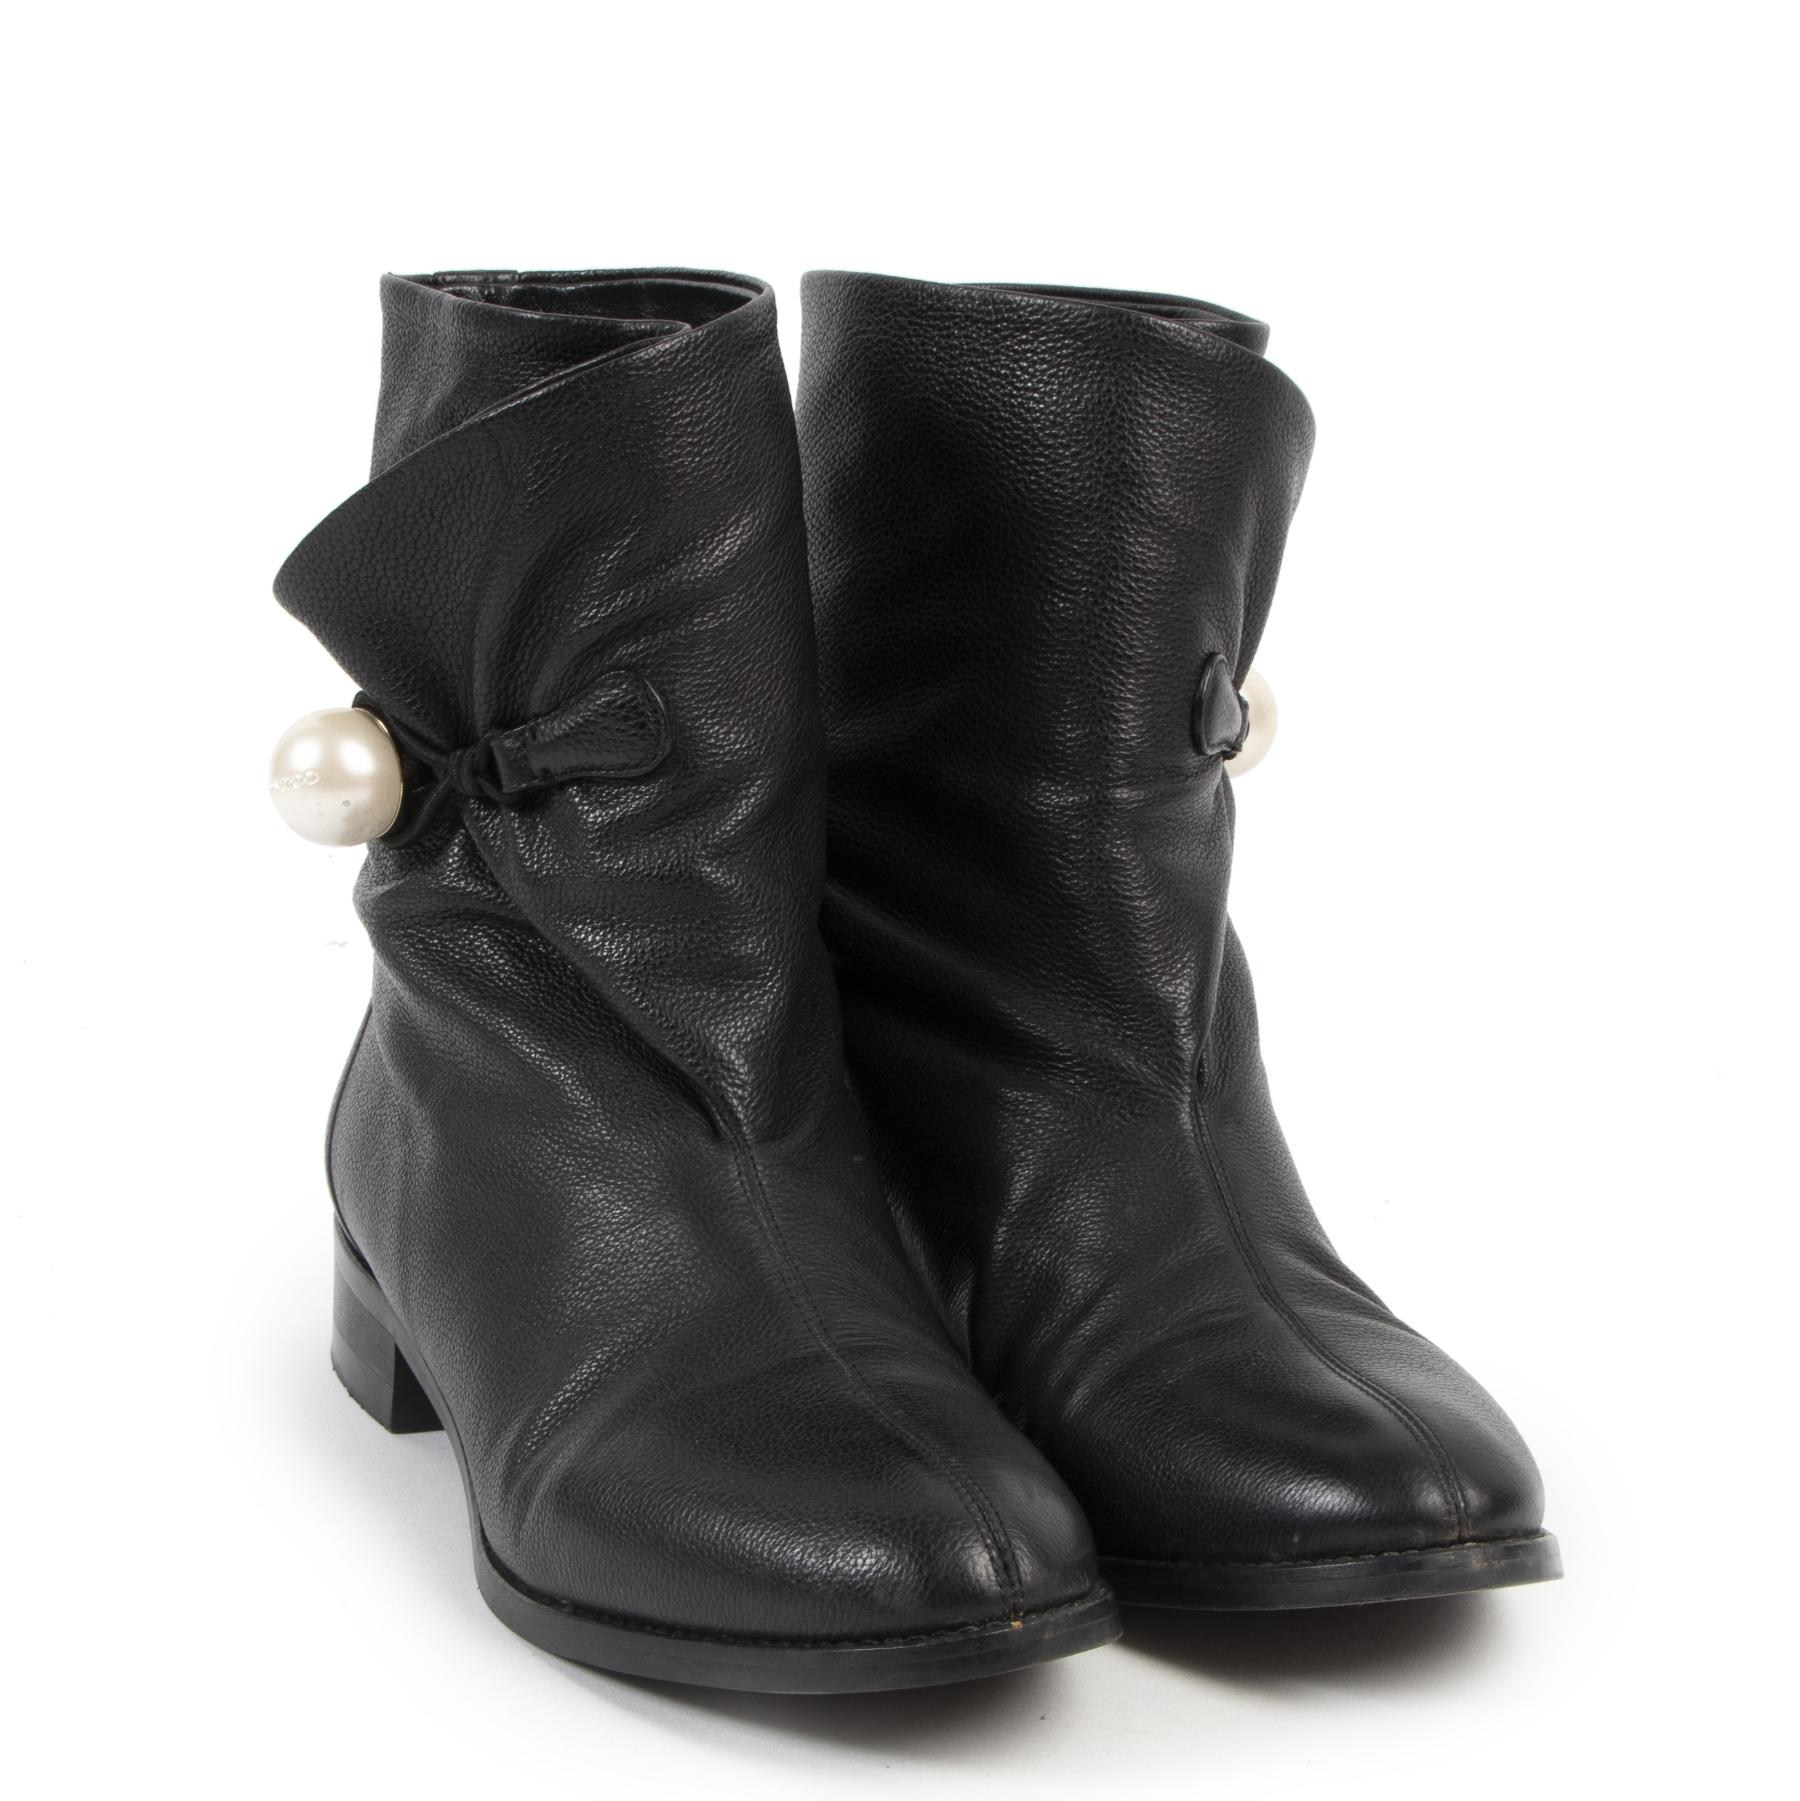 Buy authentic second hand Jimmy Choo boots with right price at LabelLOV.